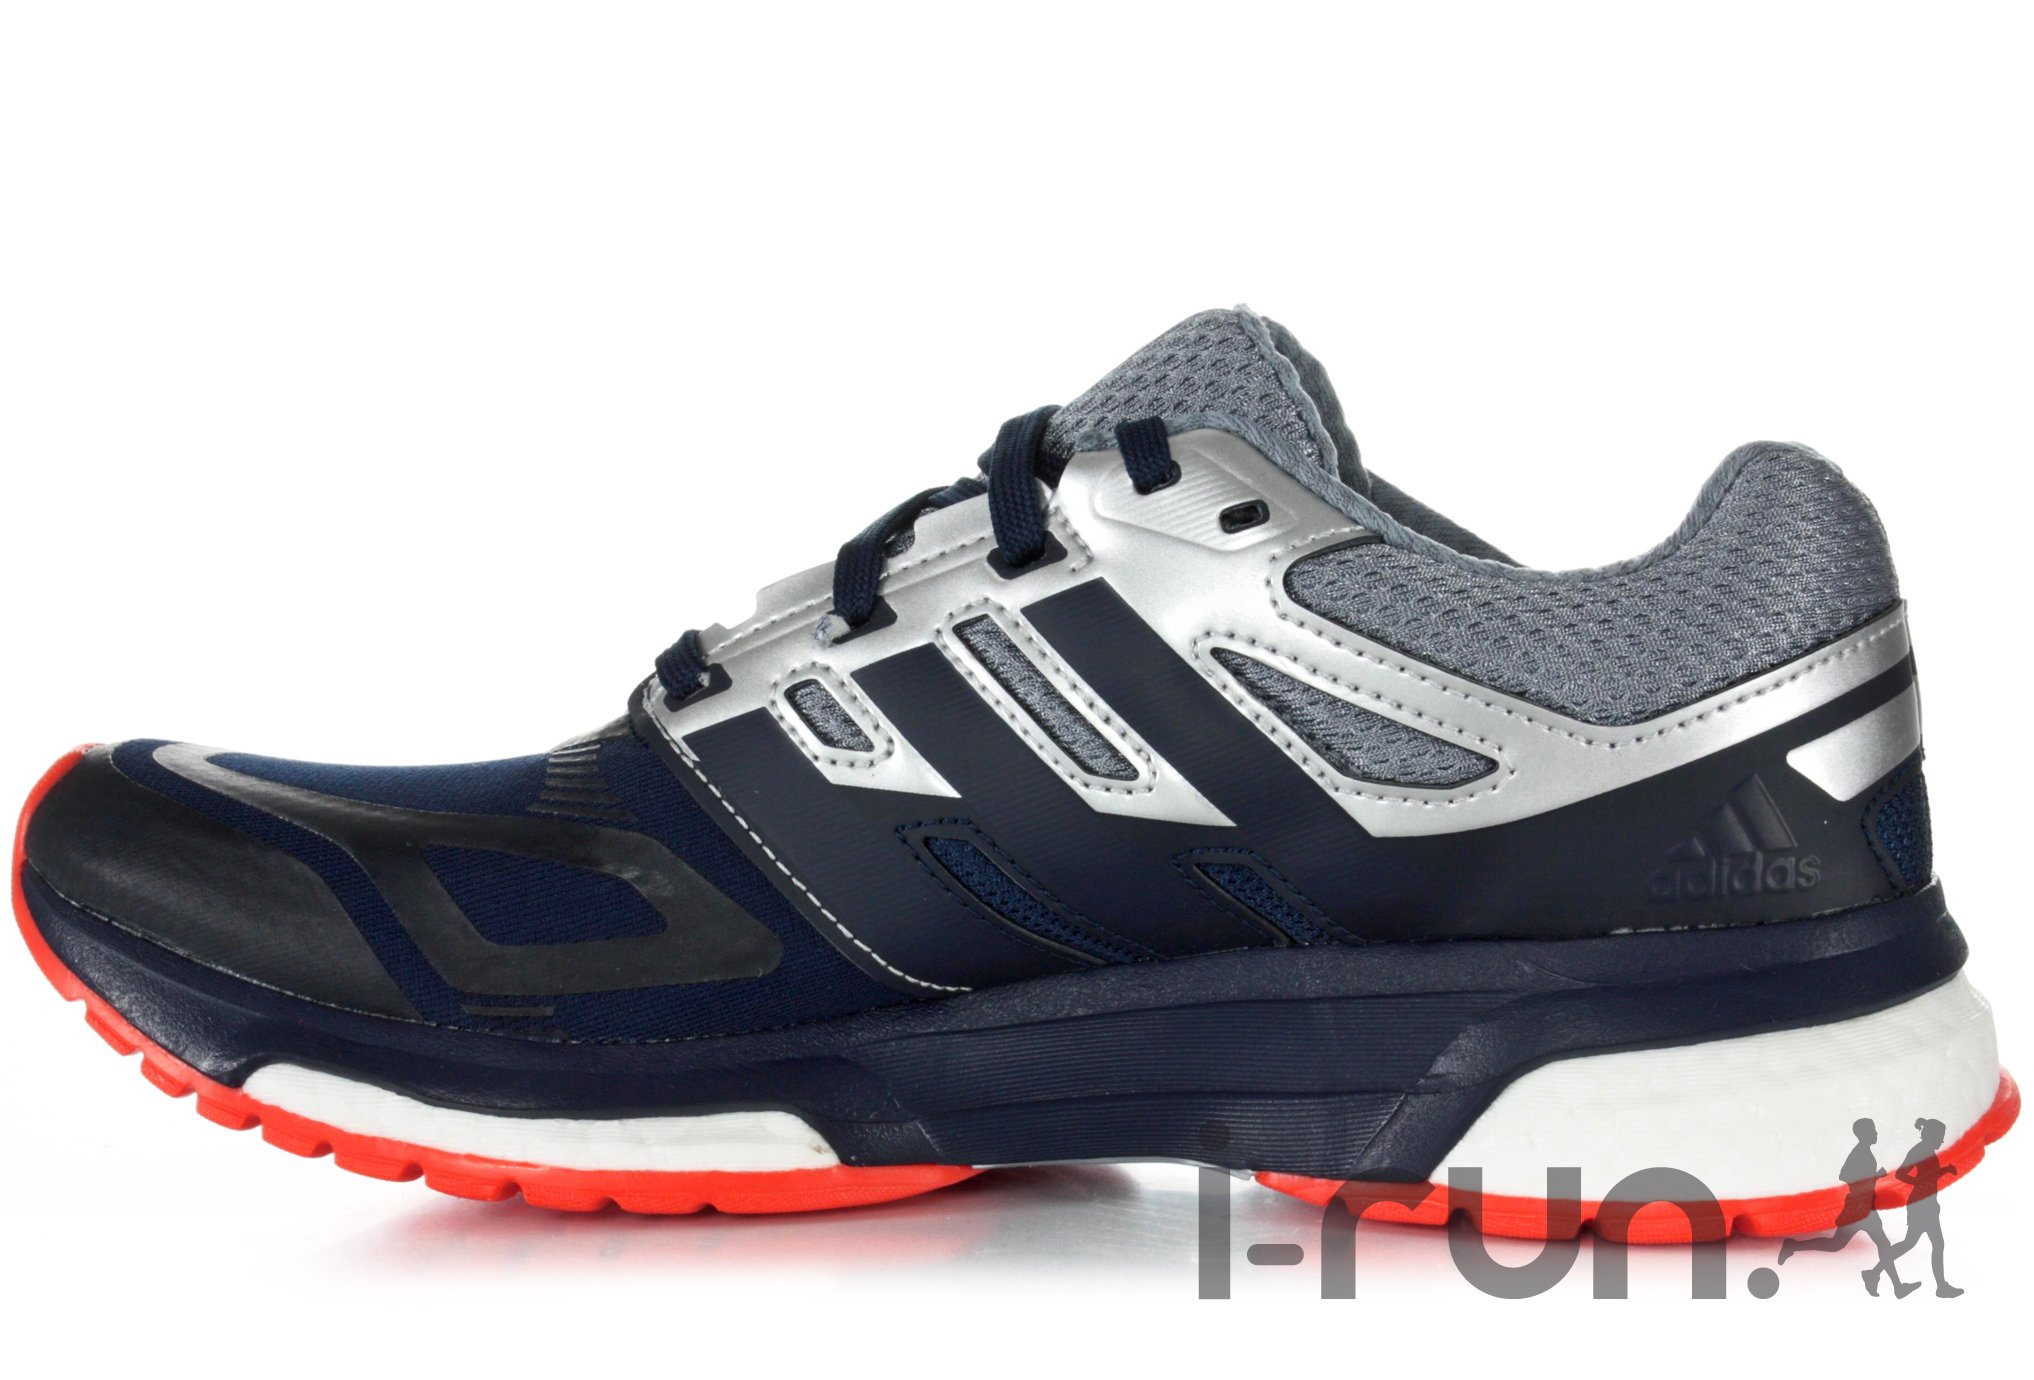 quality design d076f 478fa adidas response boost techfit,chaussures running adidas response boost  techfit homme noir blanc jaune